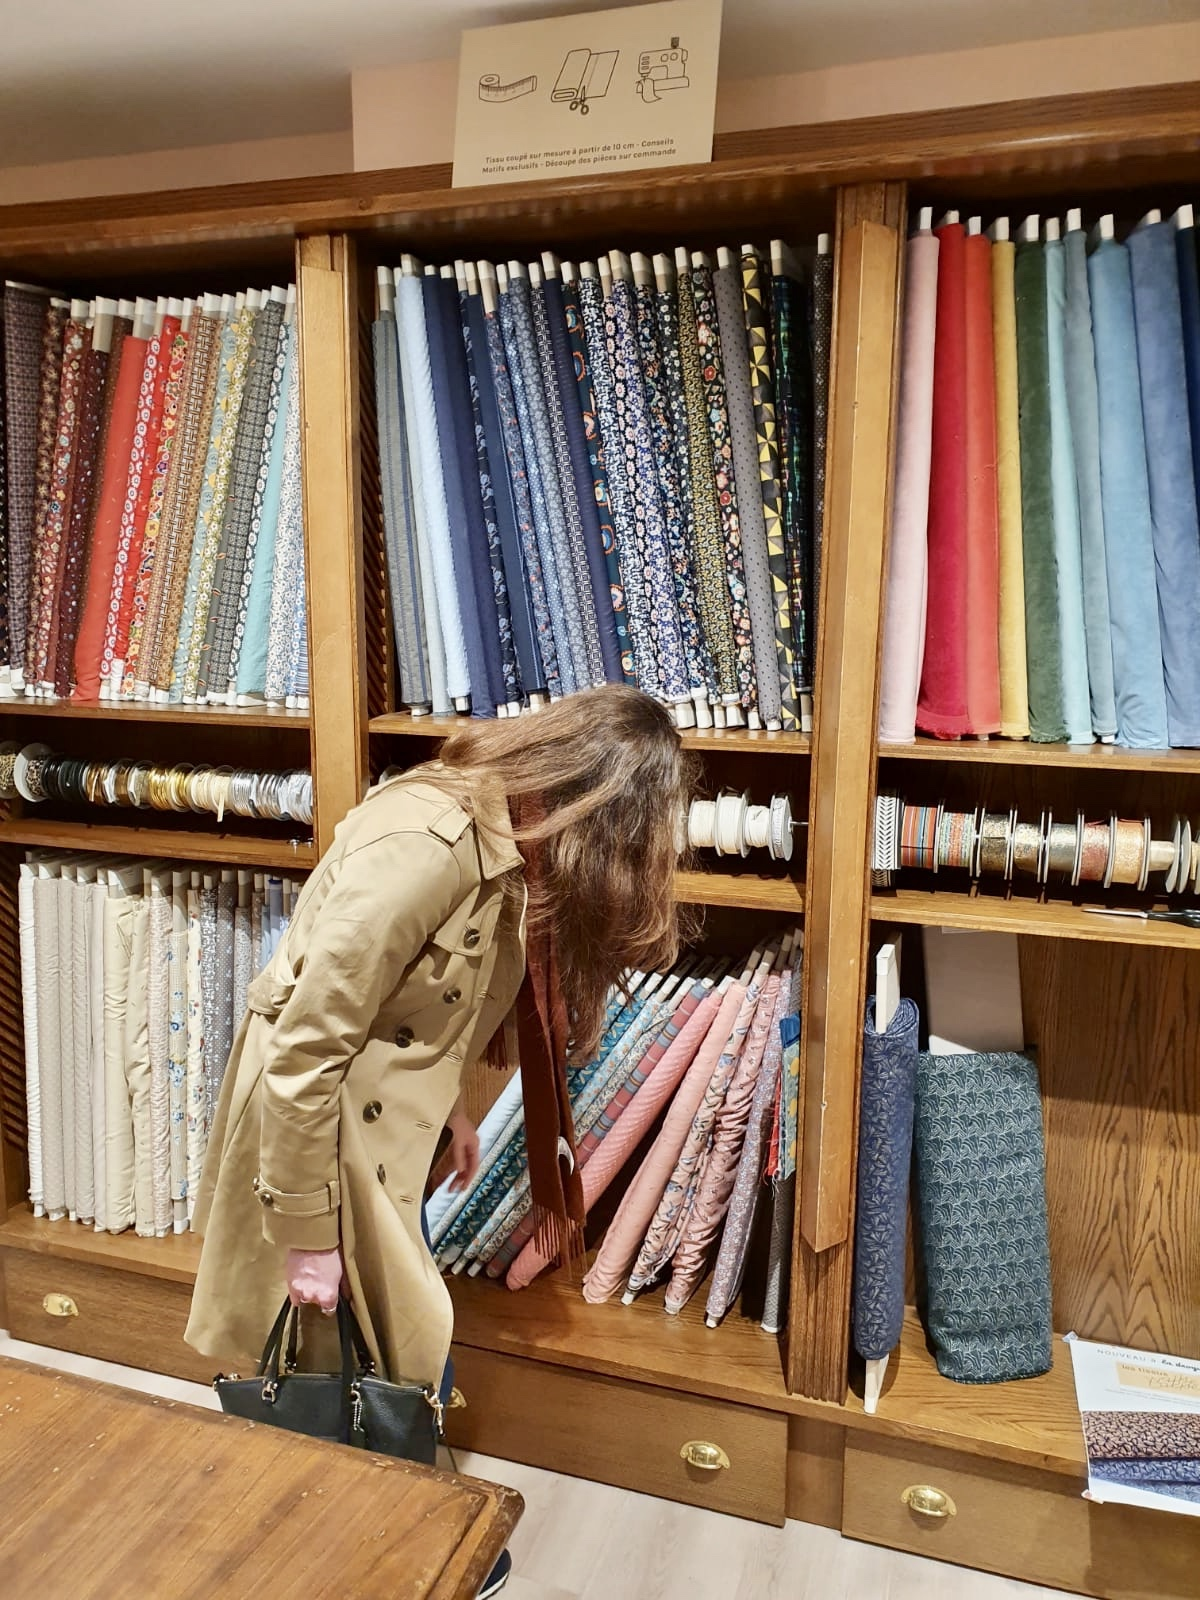 MY TOP TIPS FOR FABRIC SHOPPING